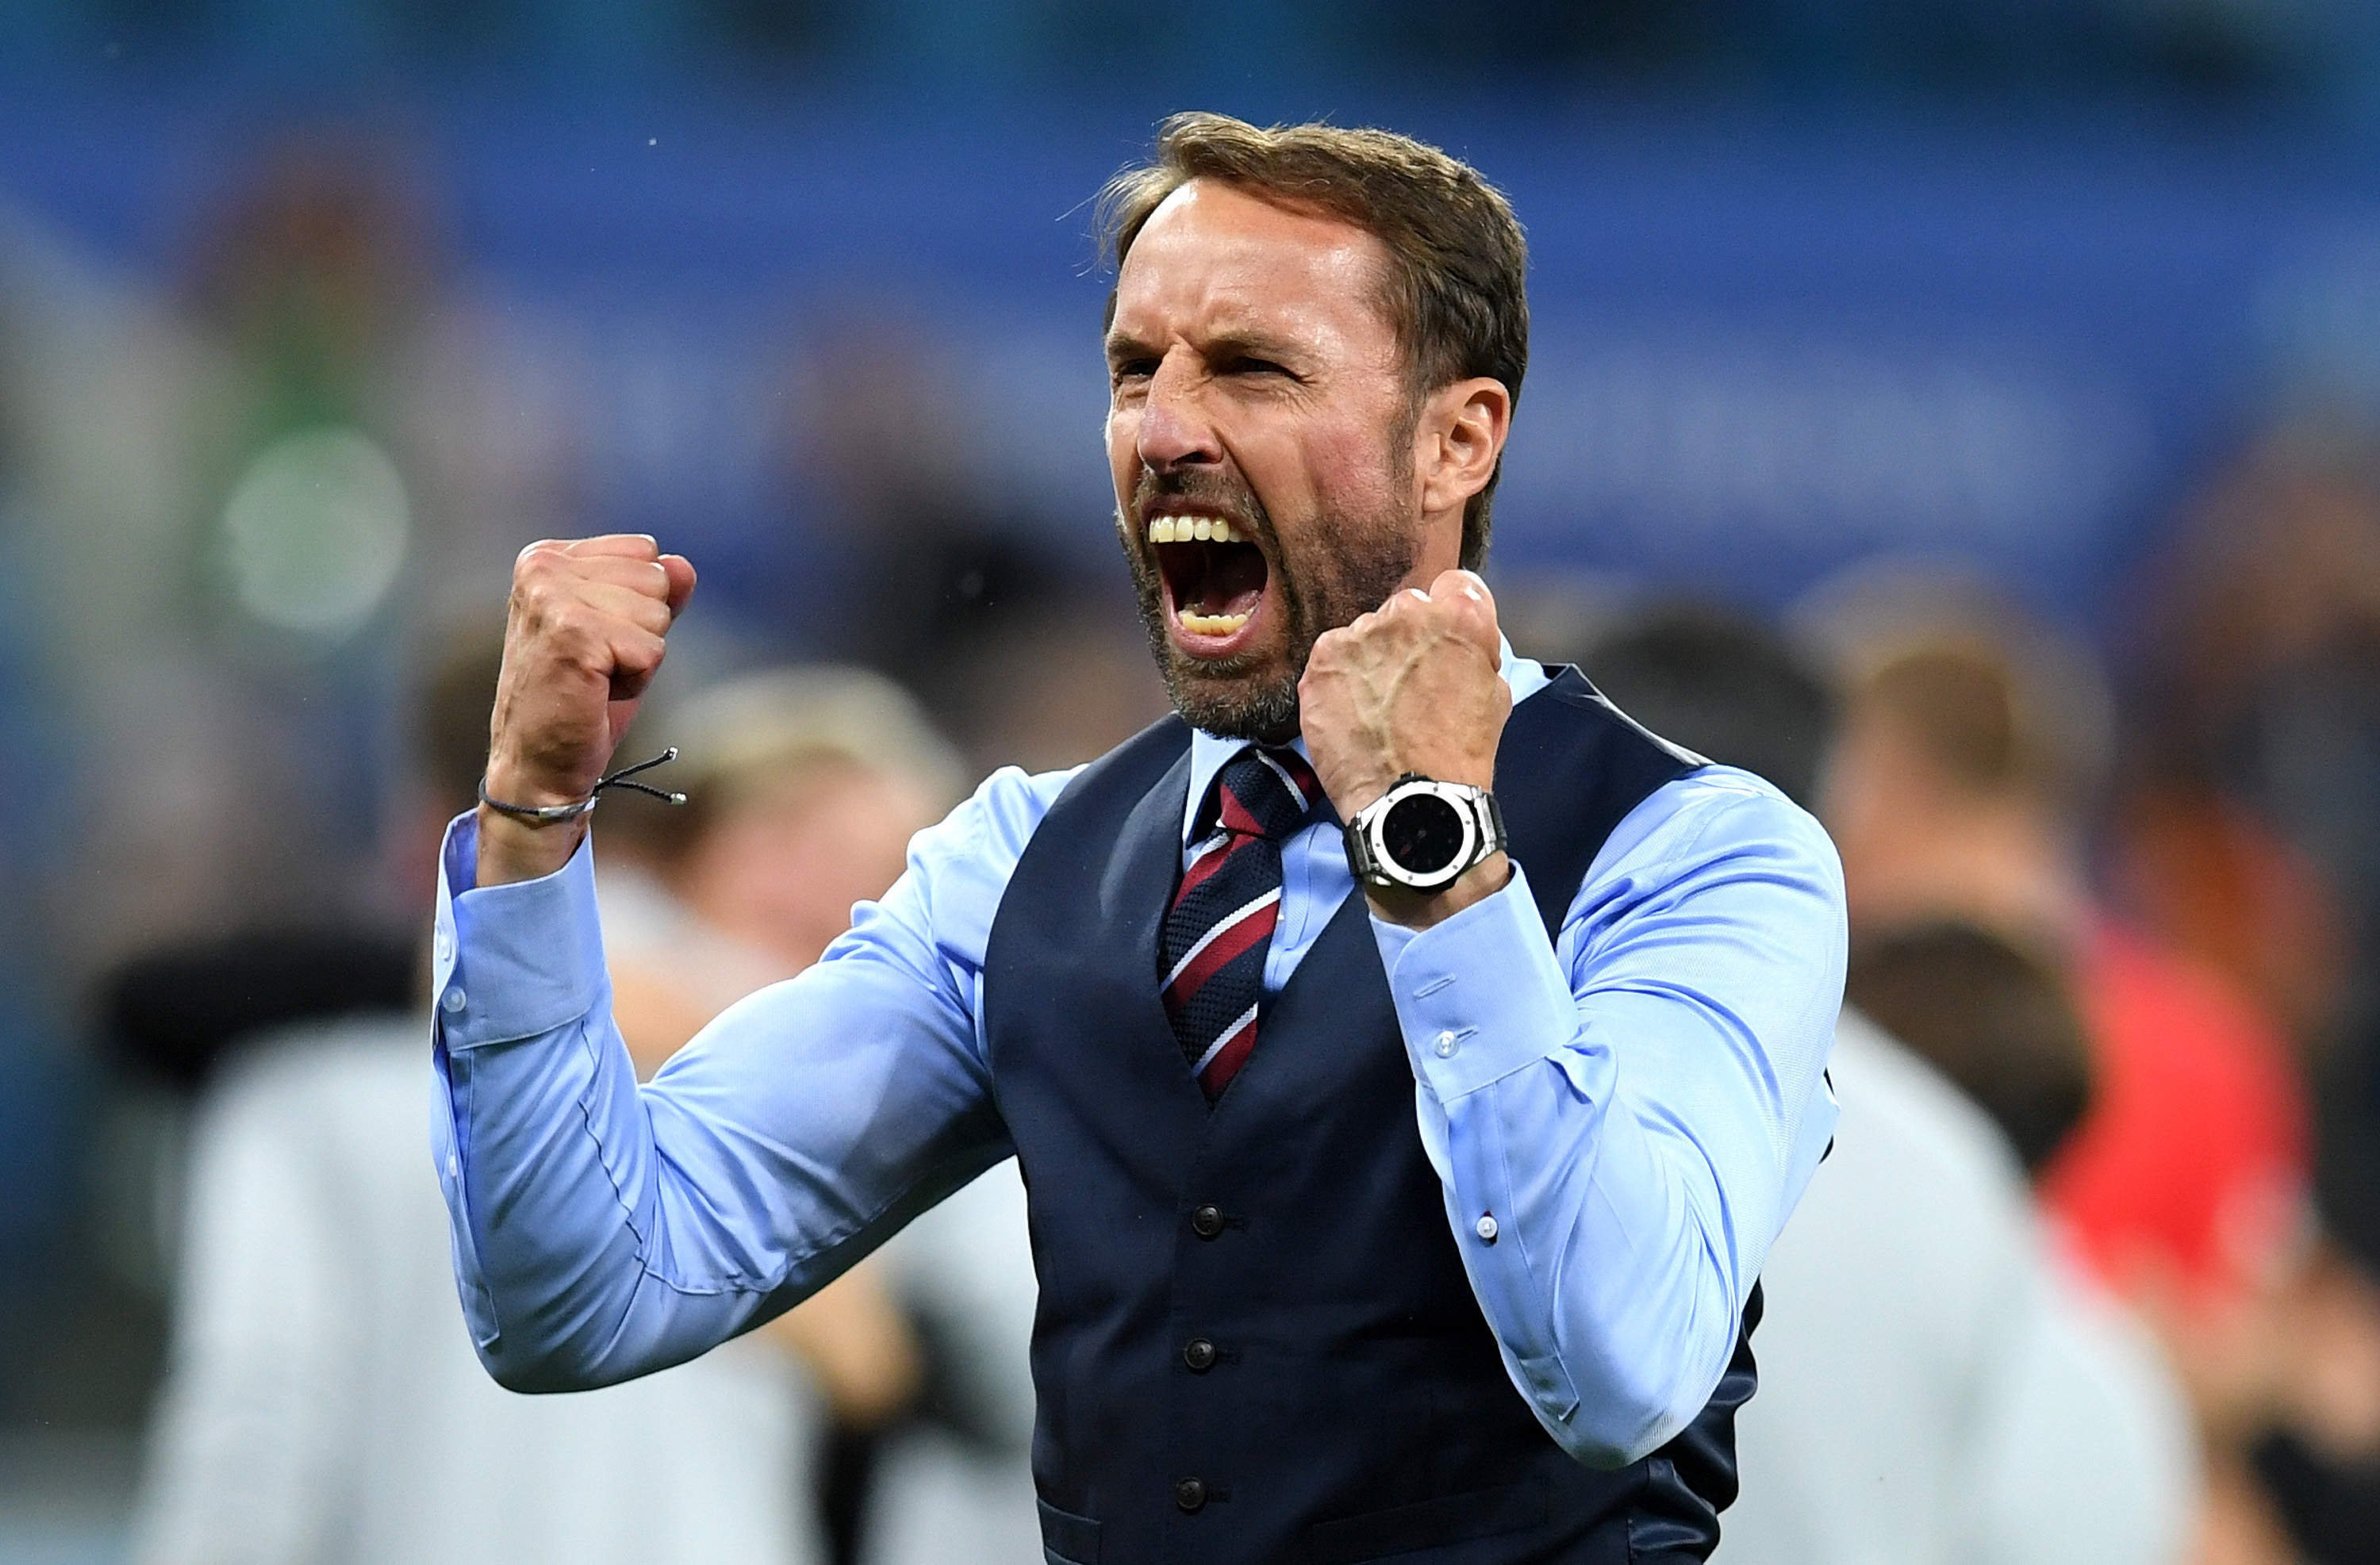 The Ambition Trophygate Gareth Southgate Harry Kane History in the Making A Player in History el Matador A Salute to the Generals – Chester Manero